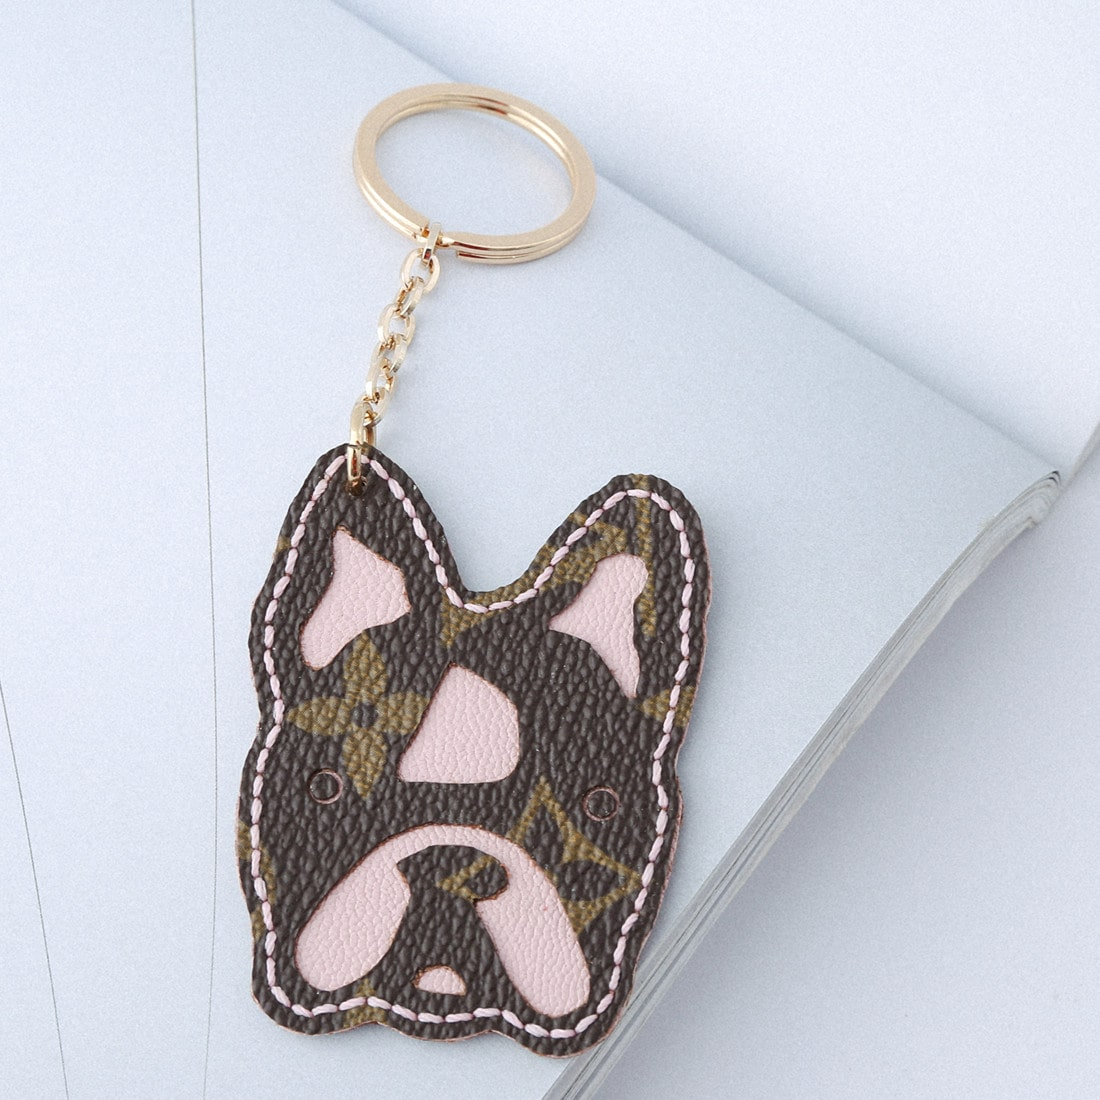 Upcycled Louis Vuitton Bulldog Keychain